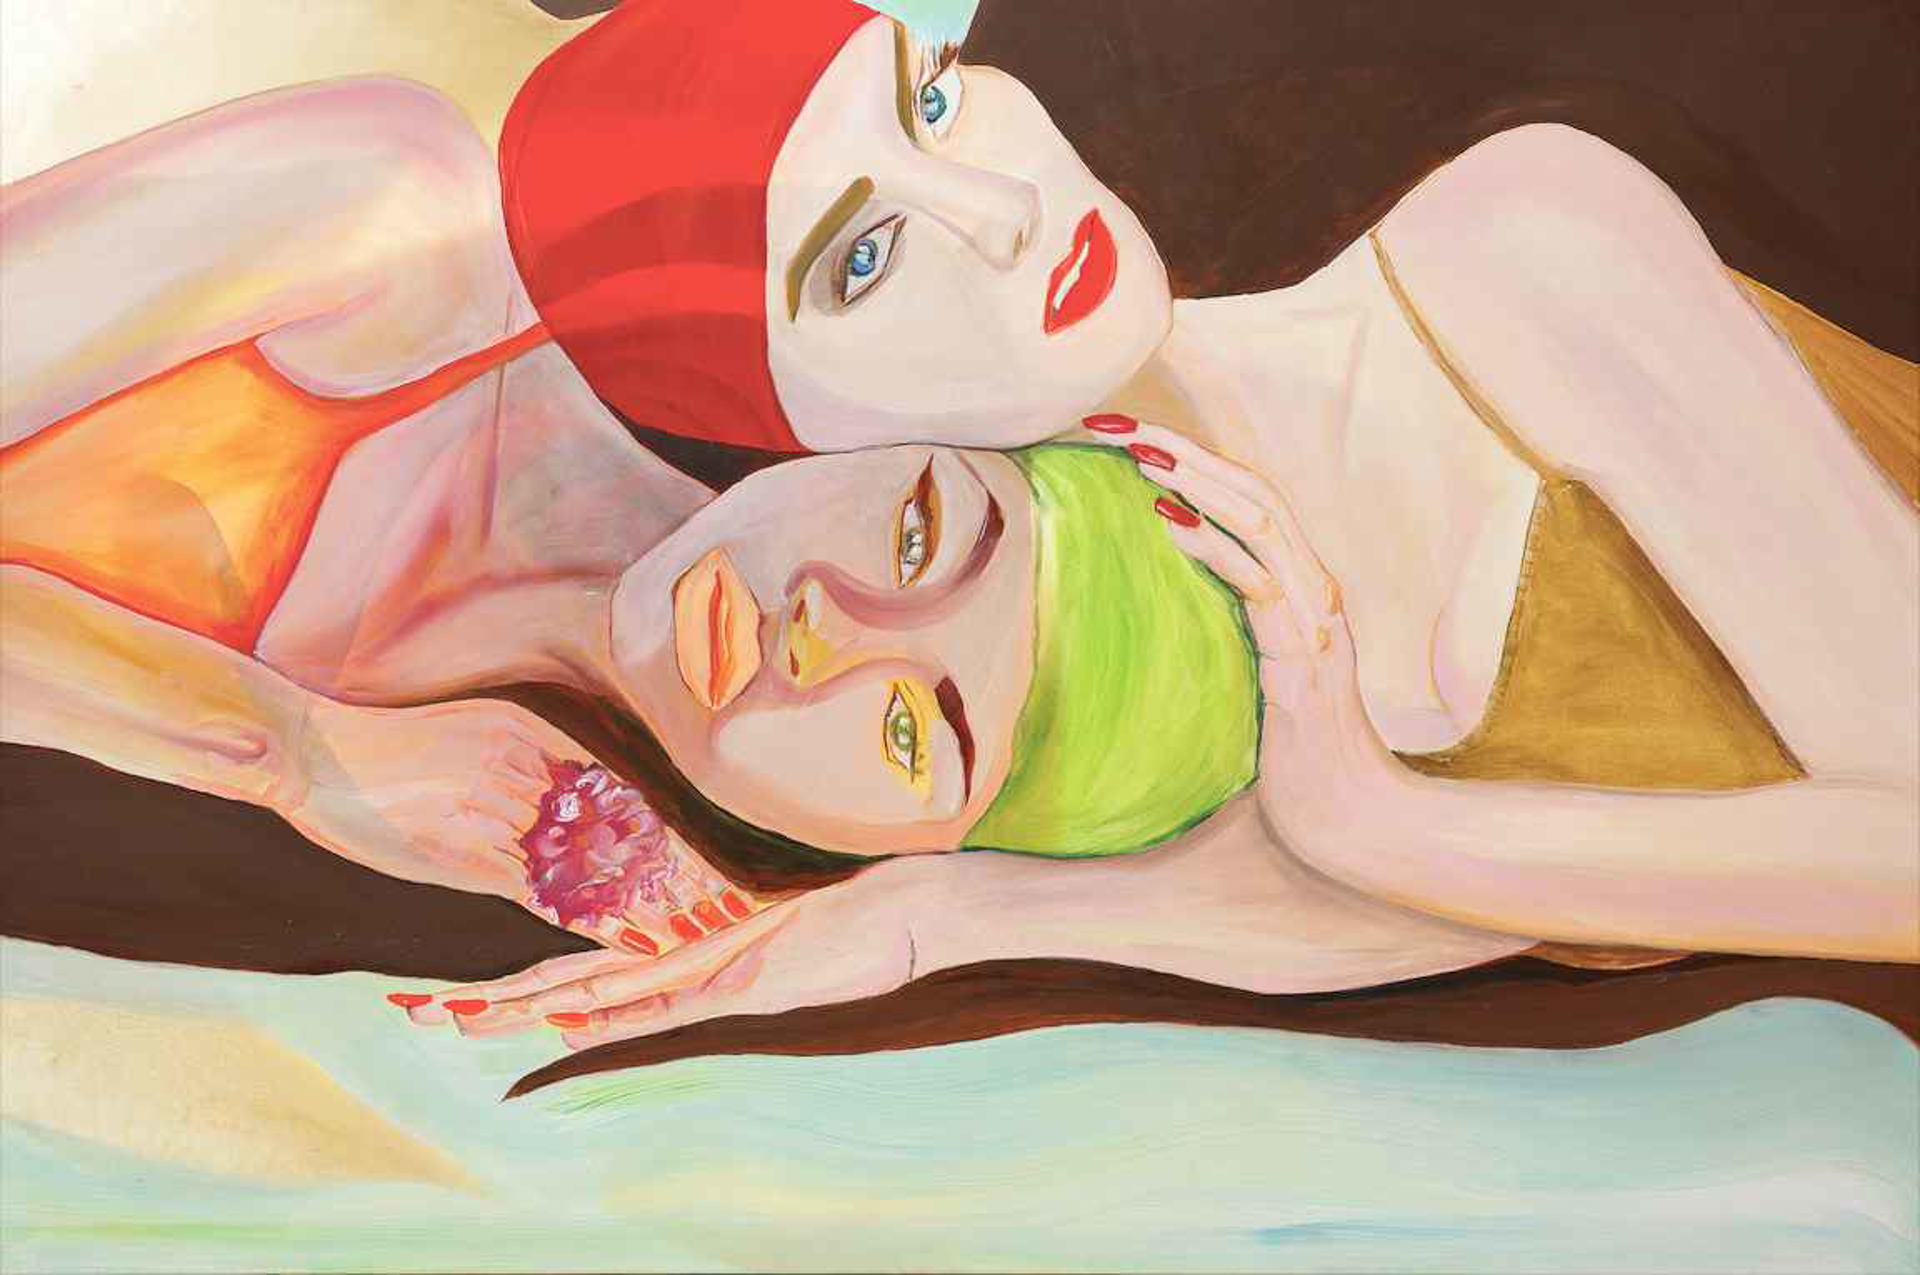 Swimmers by Nicolle Dhimes